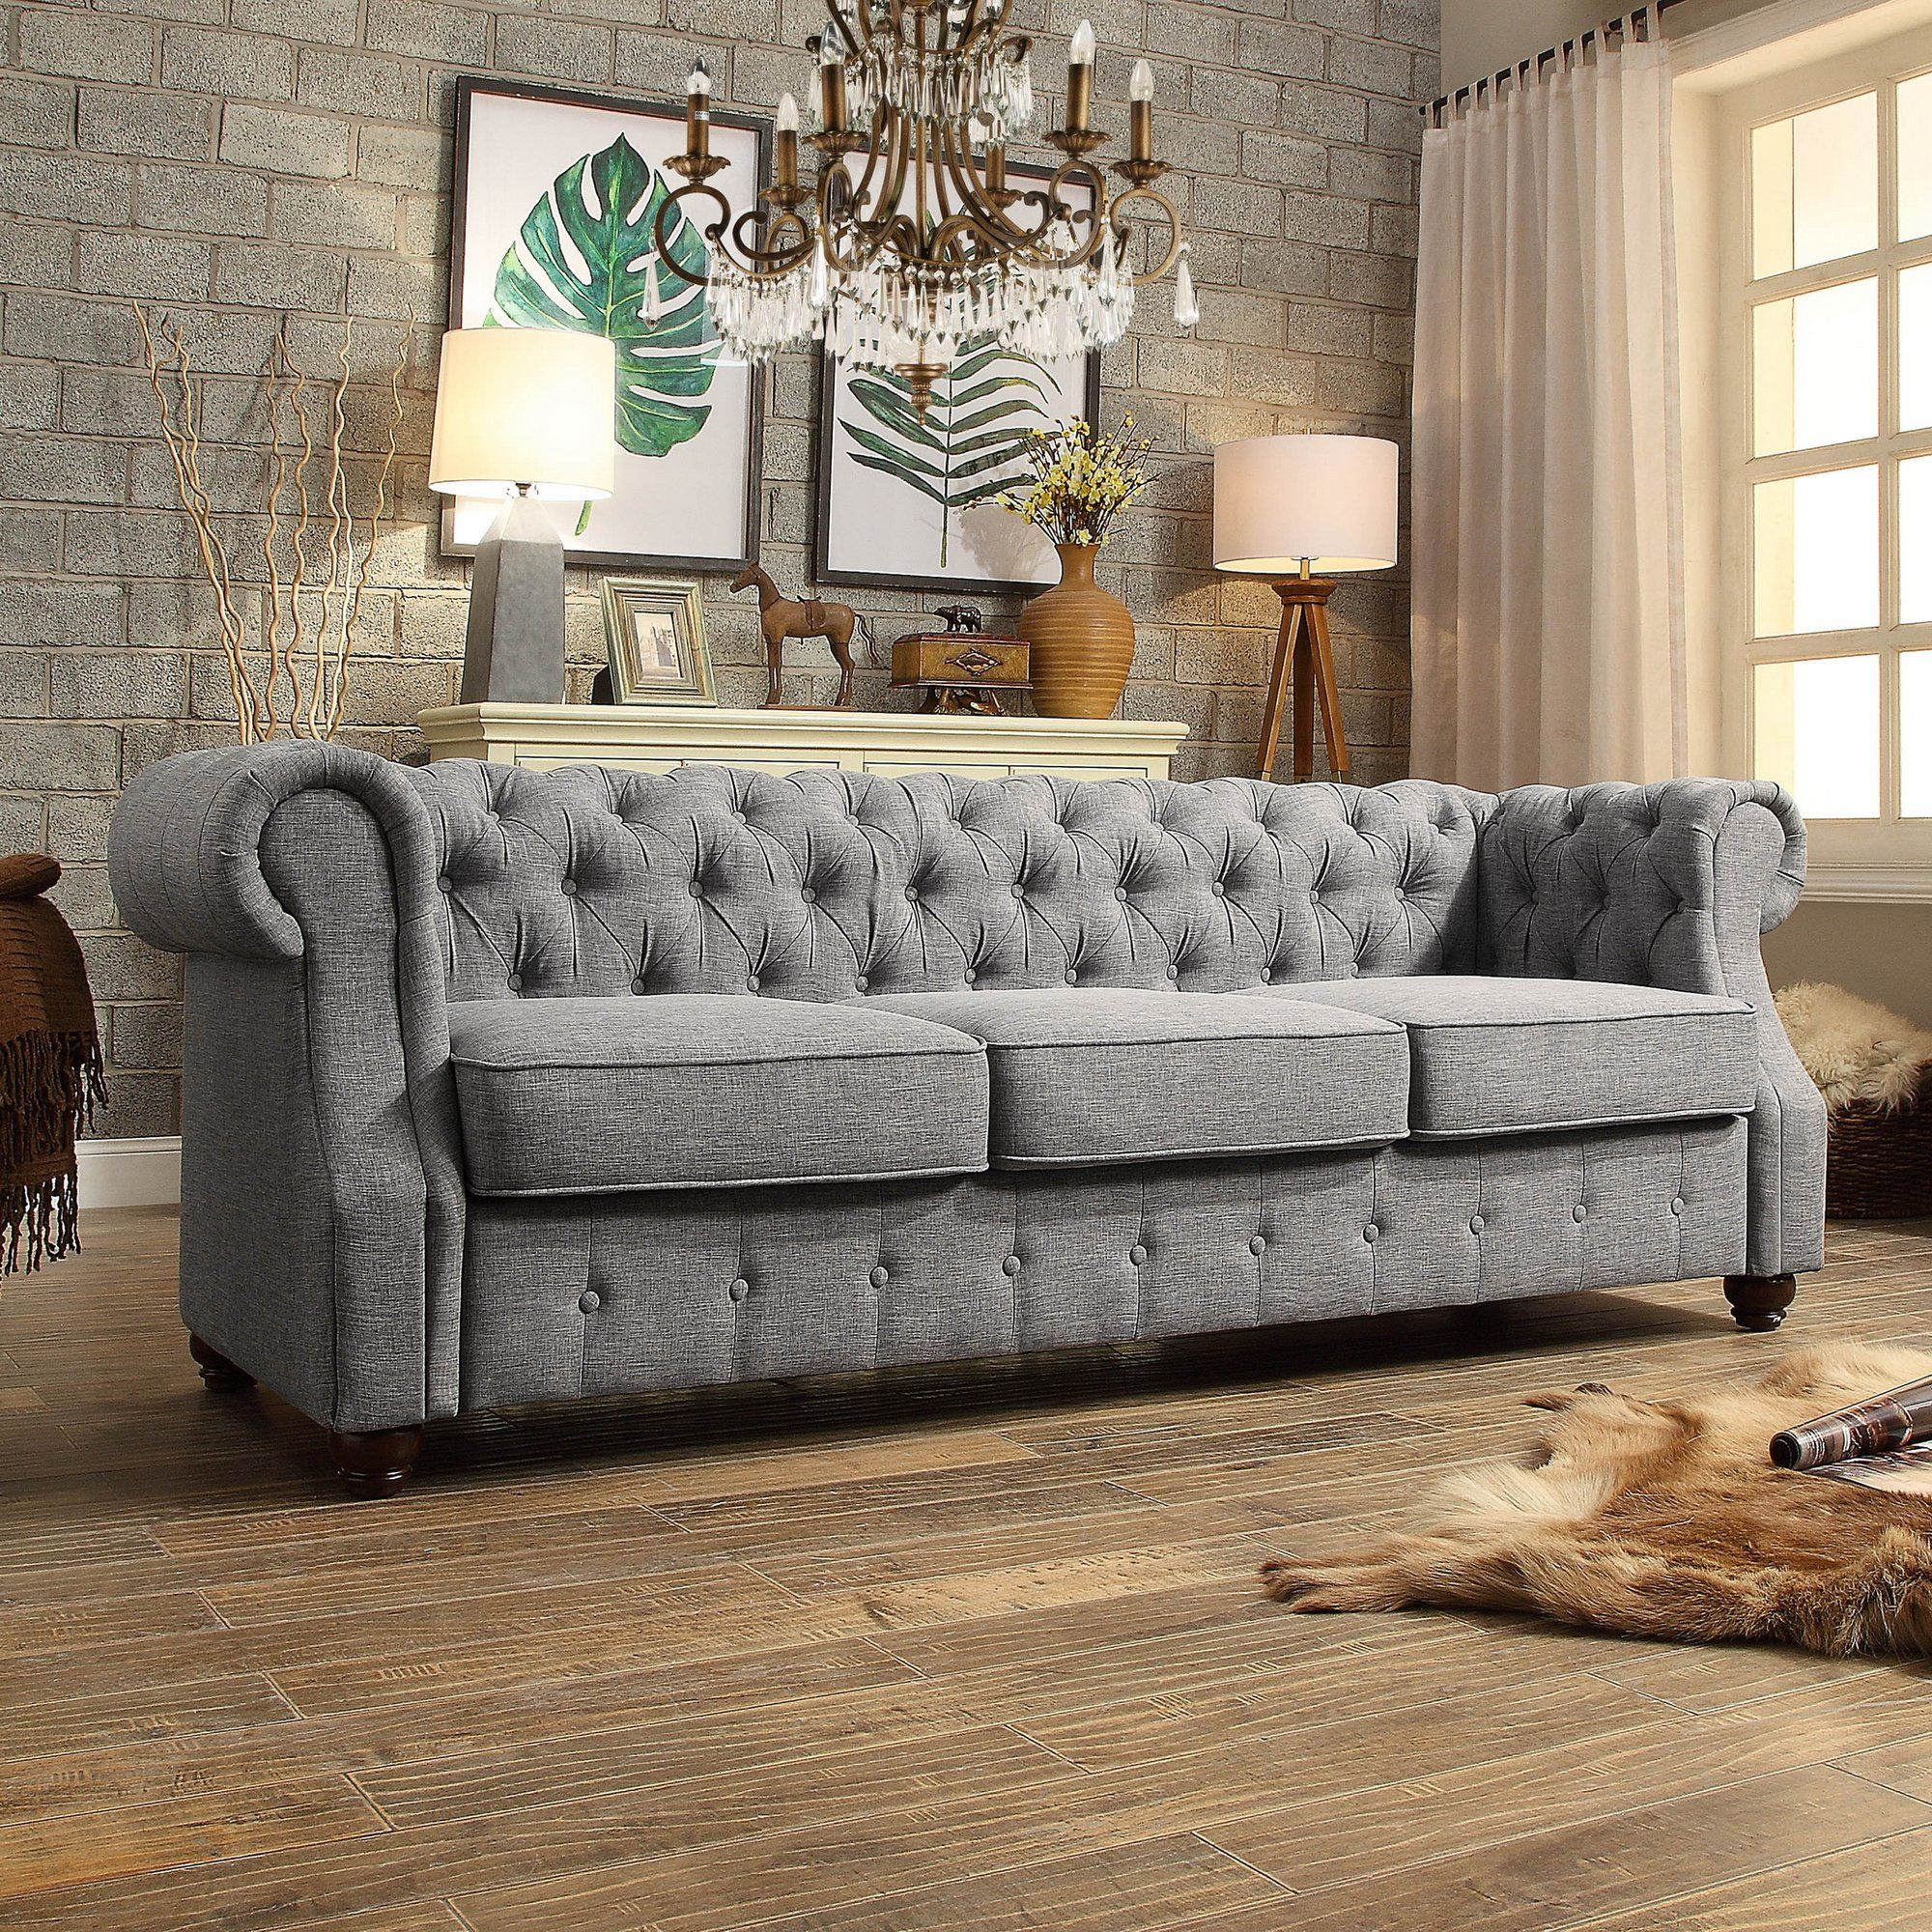 Olivia Tufted Chesterfield Sofa